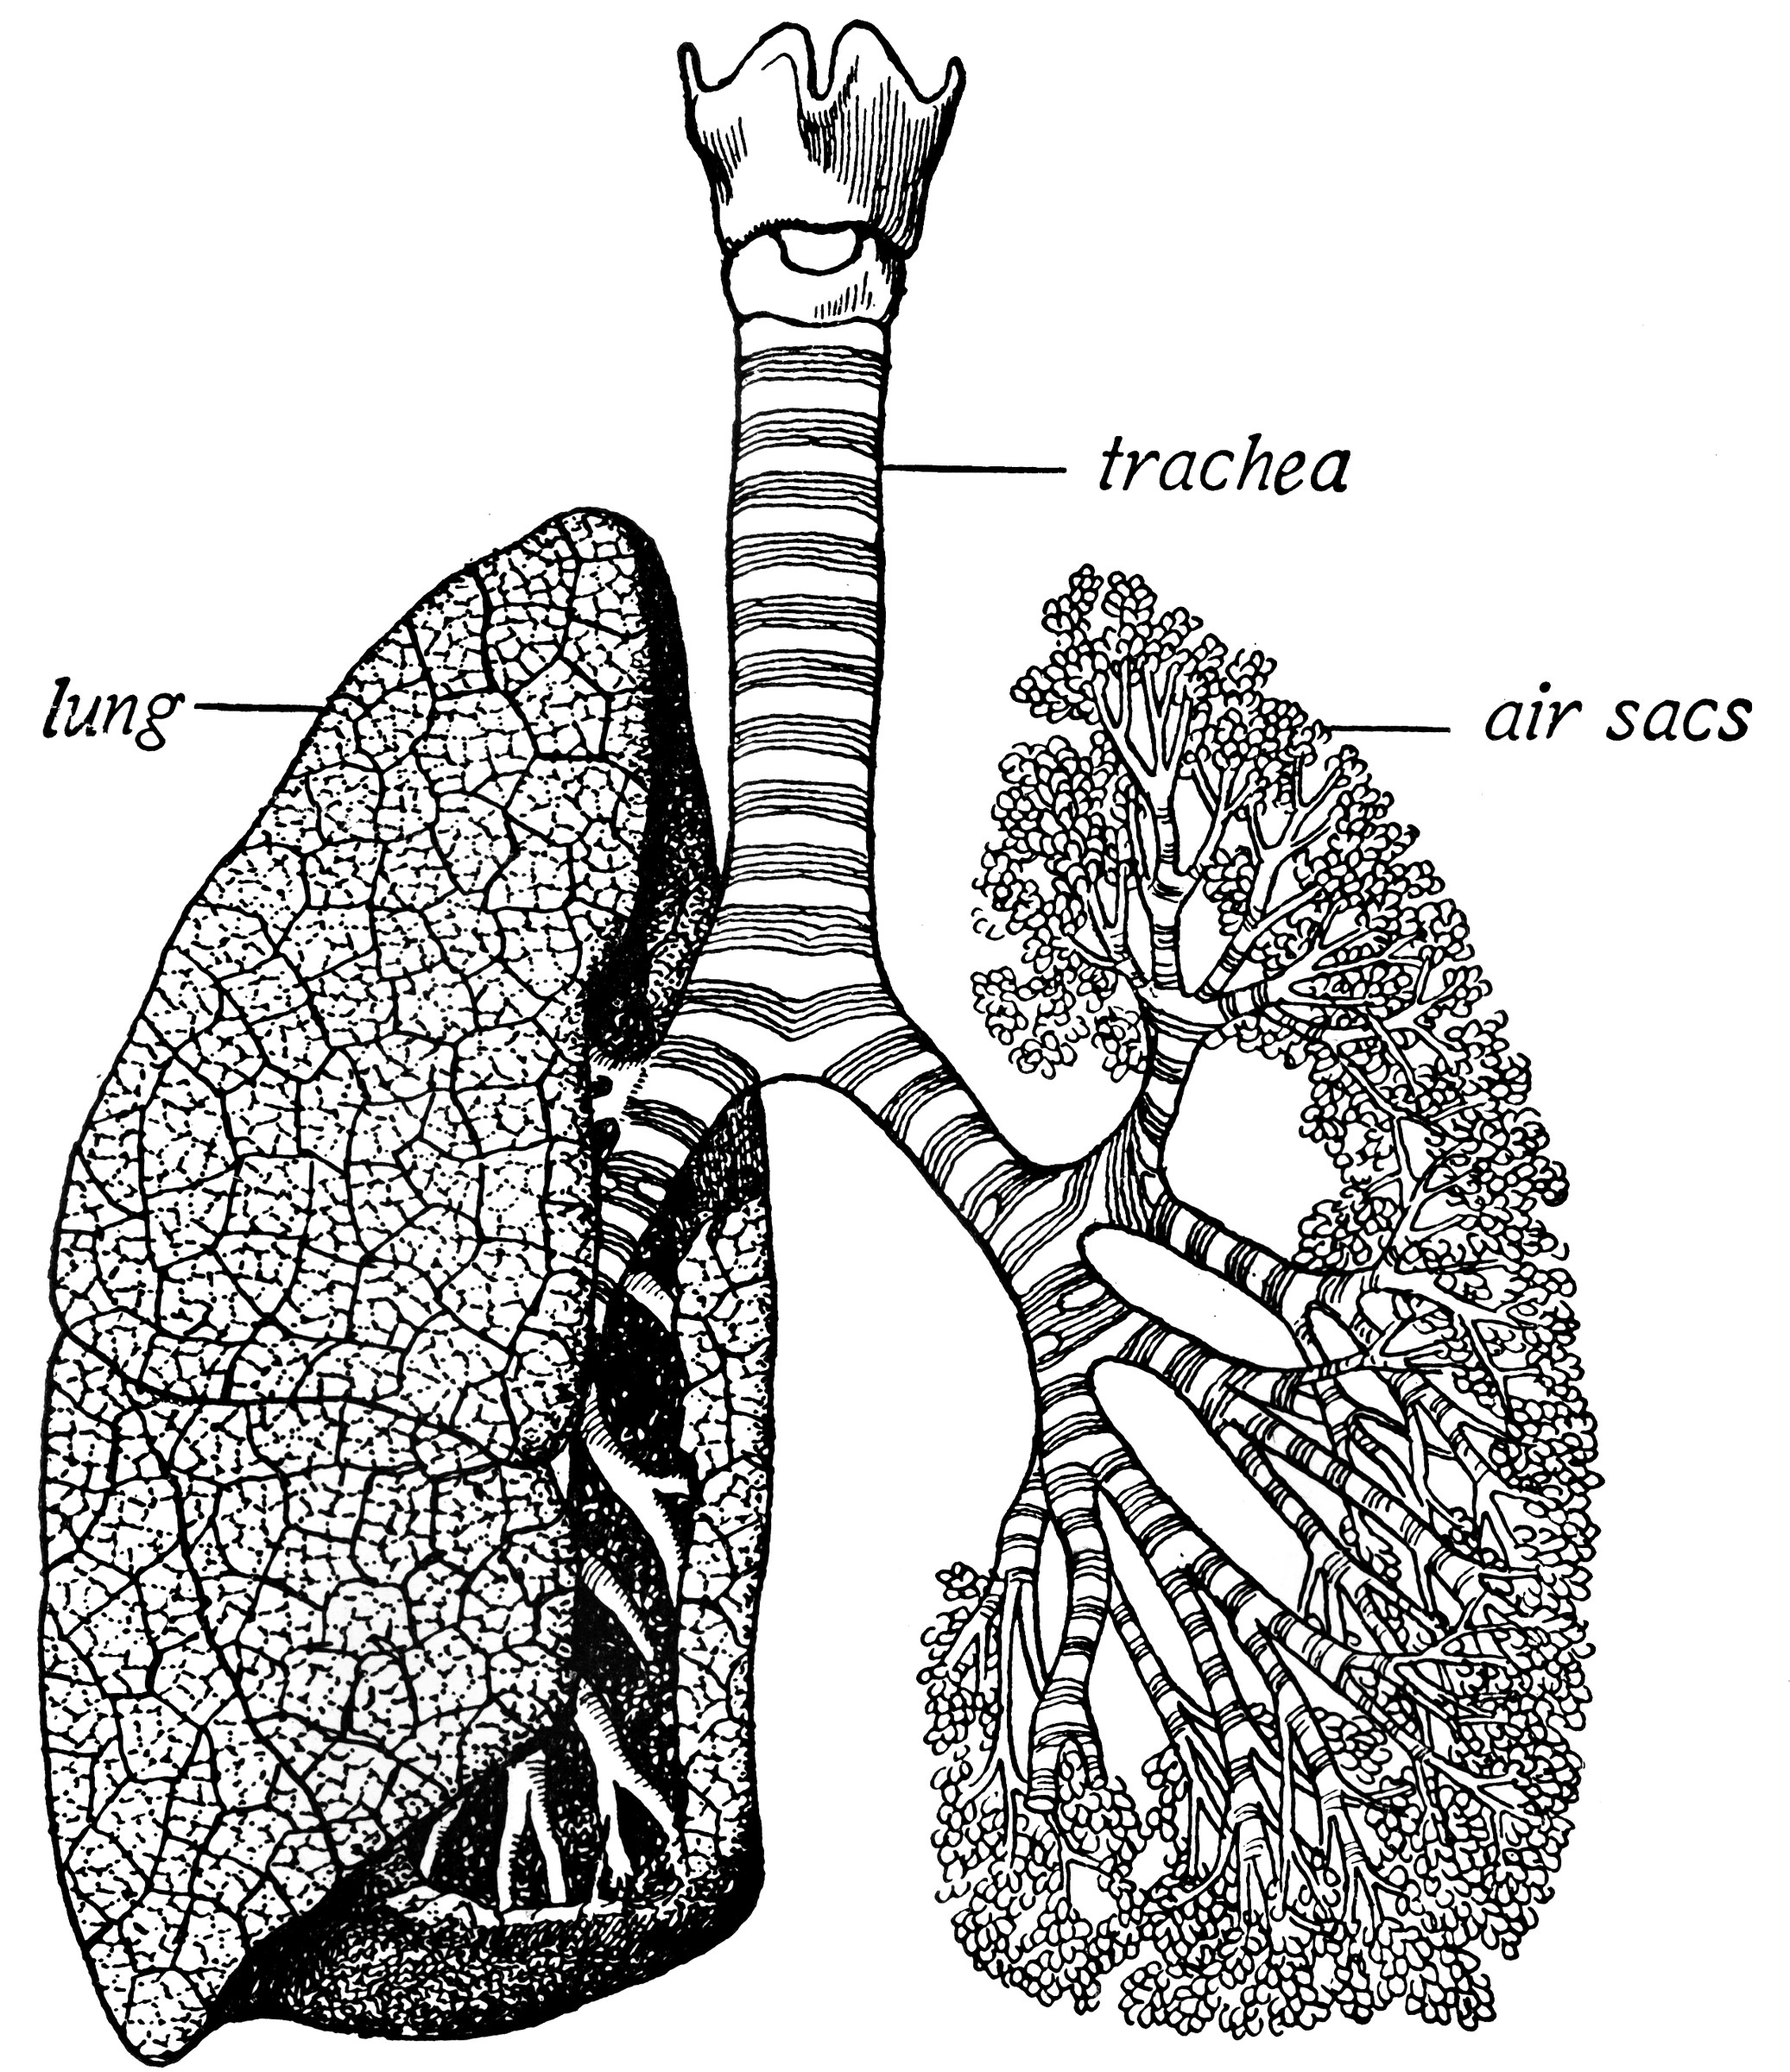 lung diagram drawing briggs and stratton 3 5 hp carburetor trachea lungs clipart etc